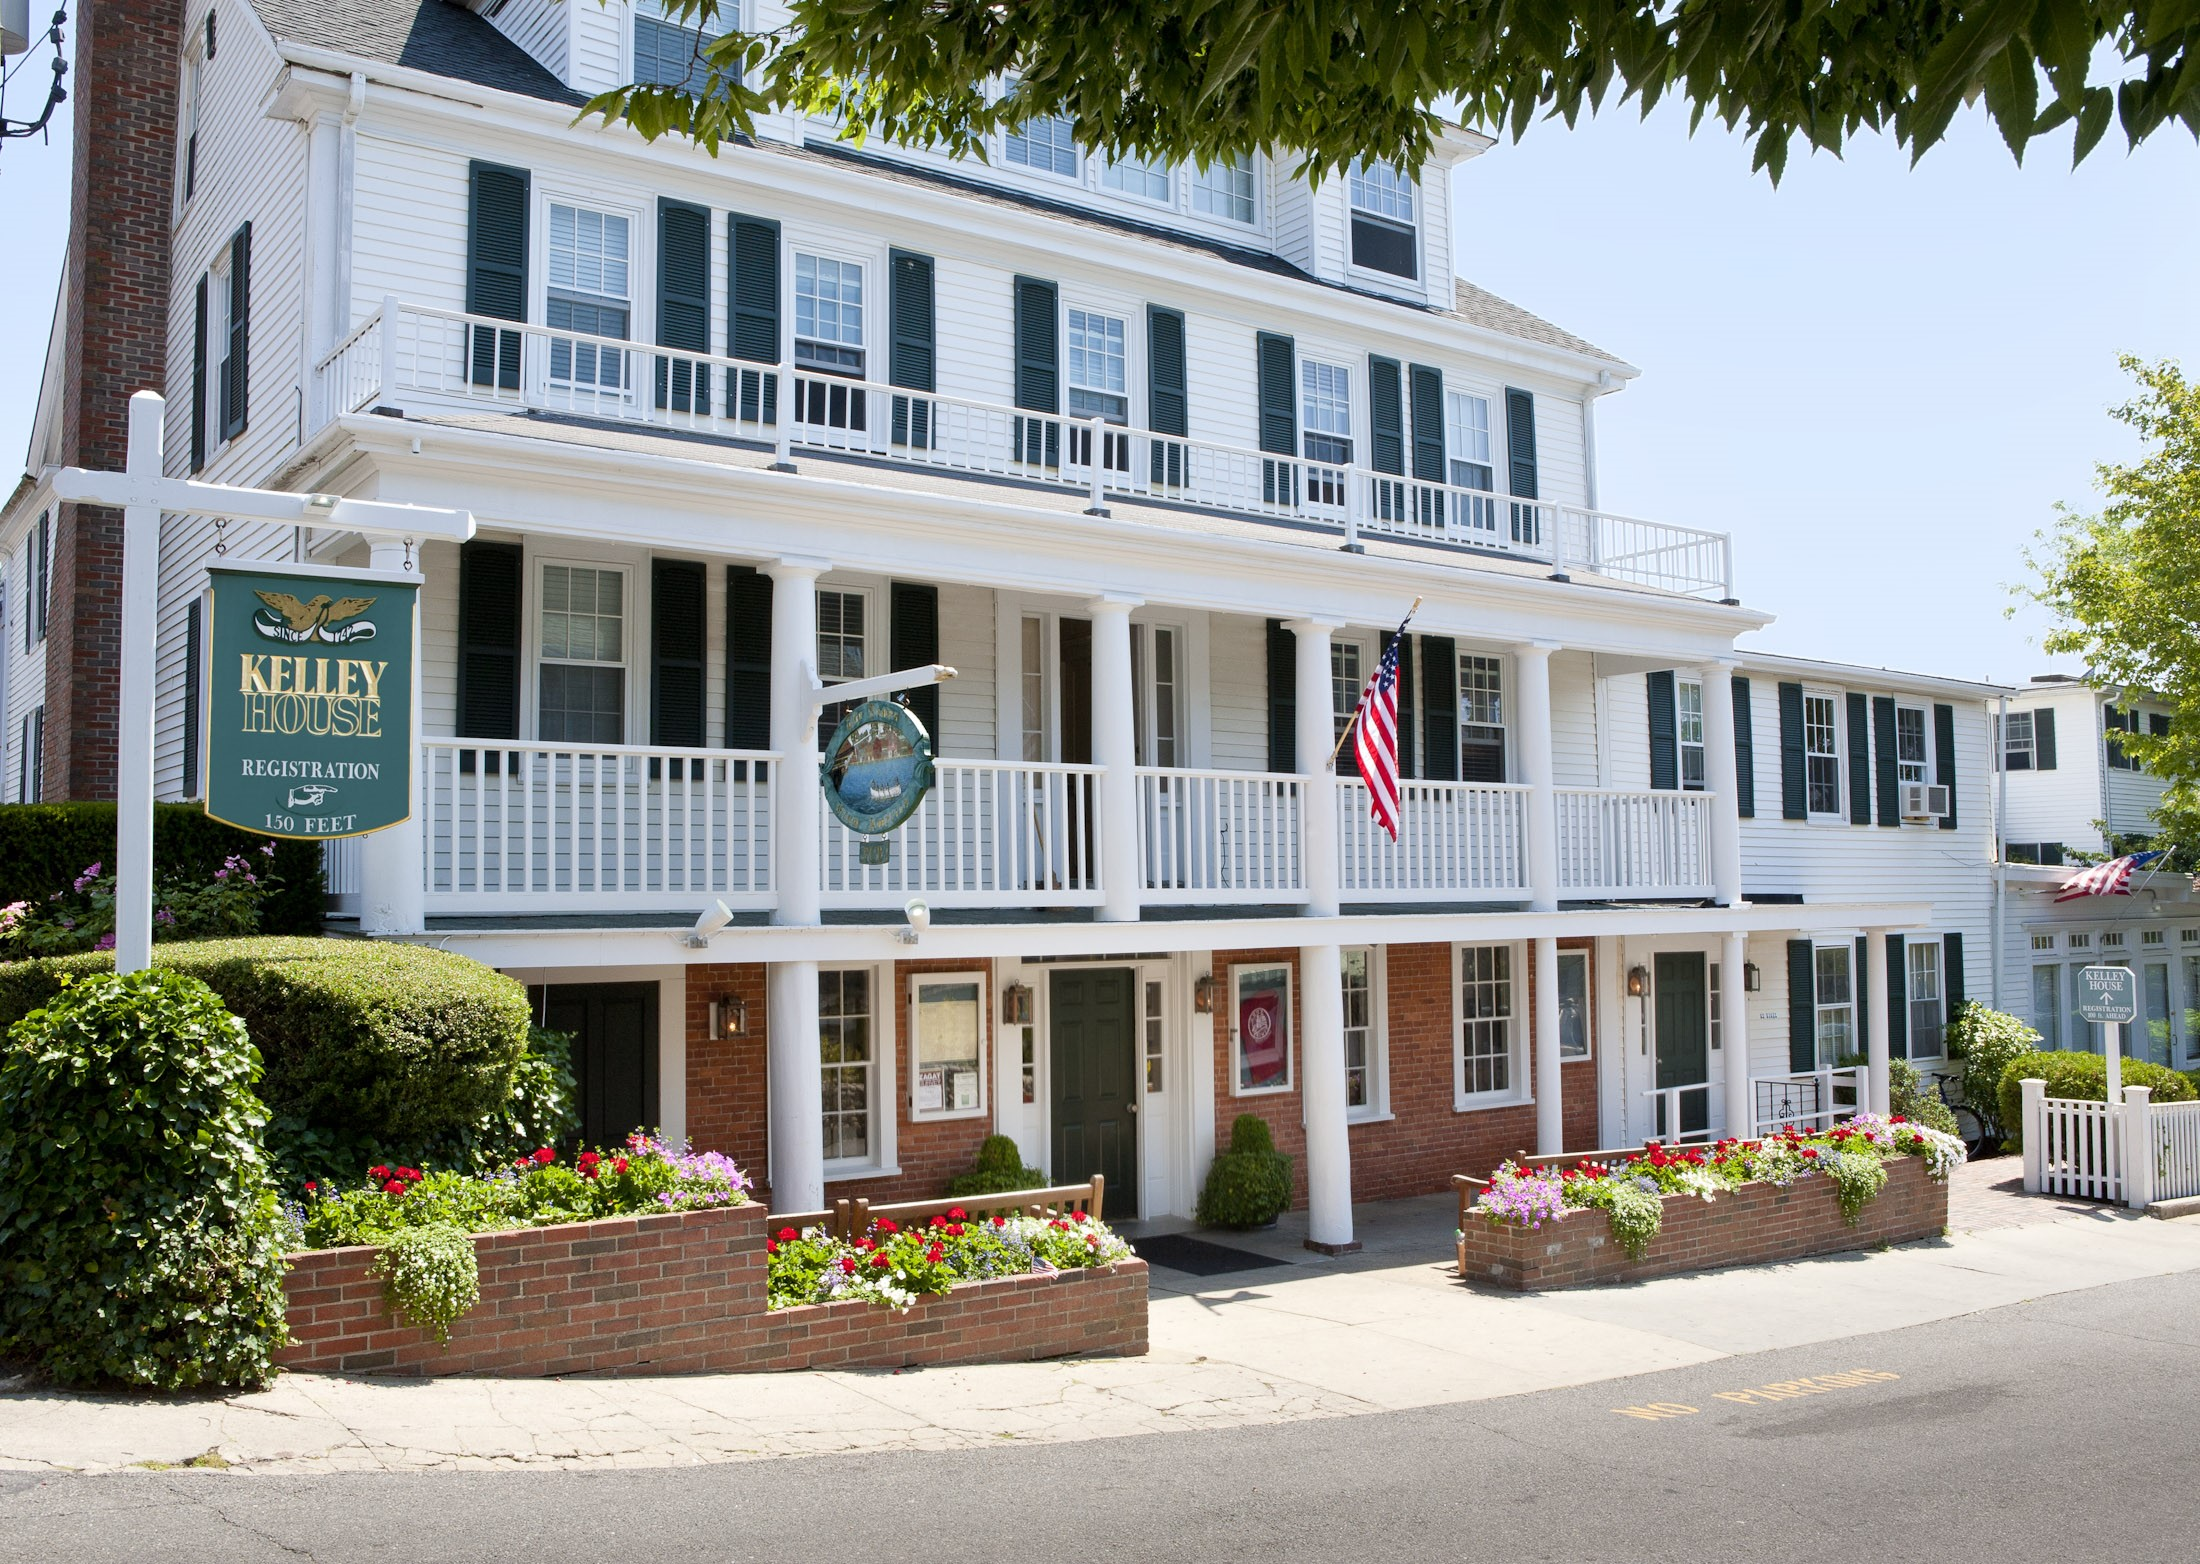 "KELLY HOUSE--(EDGARTOWN) (508) 627-7900    ROOM RATES: Call for rates, Mention: ""Martha's Vineyard Marathon"")    BOOK NOW: call for rates   Located in quaint Edgartown Kelley House is a gem among Martha's Vineyard hotels that has been offering guests classic Vineyard charm since 1742. Comprised of four classic houses and cottages offering a range of well-appointed  room and suites ,Kelley House is the choice in Edgartown hotels. Situated just steps from the waterfront.  Edgartown Bus Shuttle to start: 0 miles FINISH: 5 Miles (bus transportation provided from finish to Edgartown)"